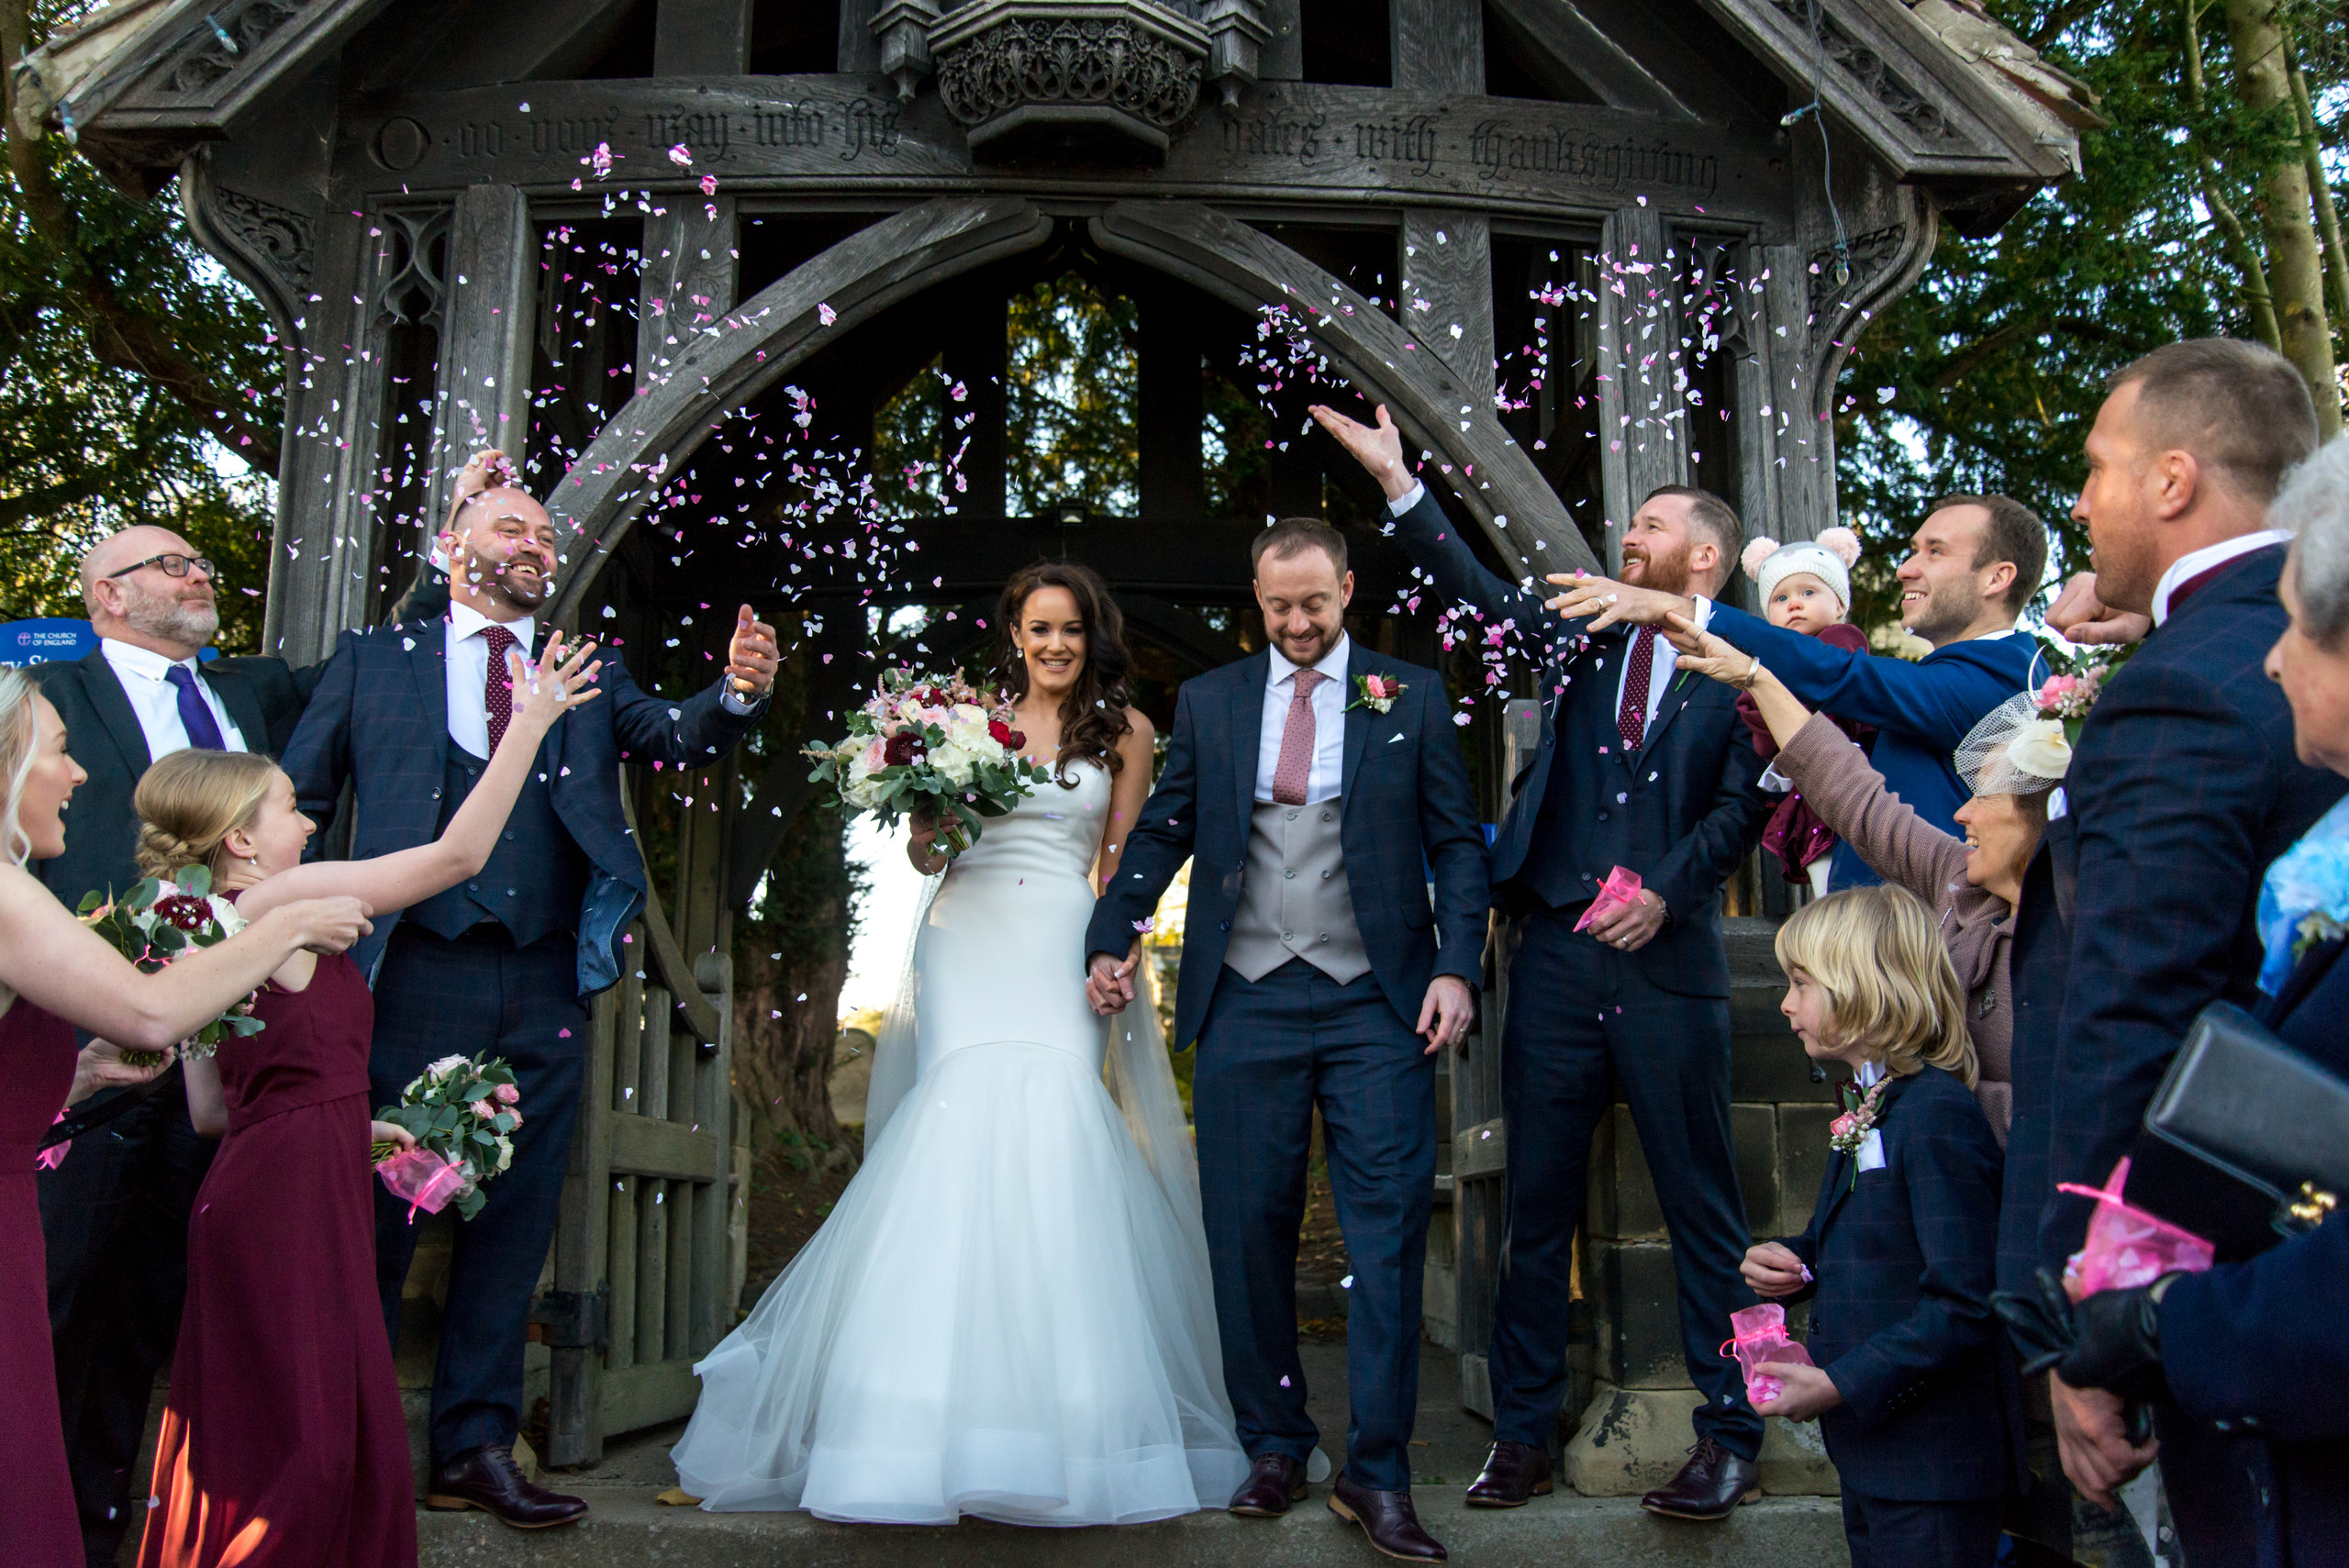 Wedding day photo of Bride and groom confetti outside of church in Stannington